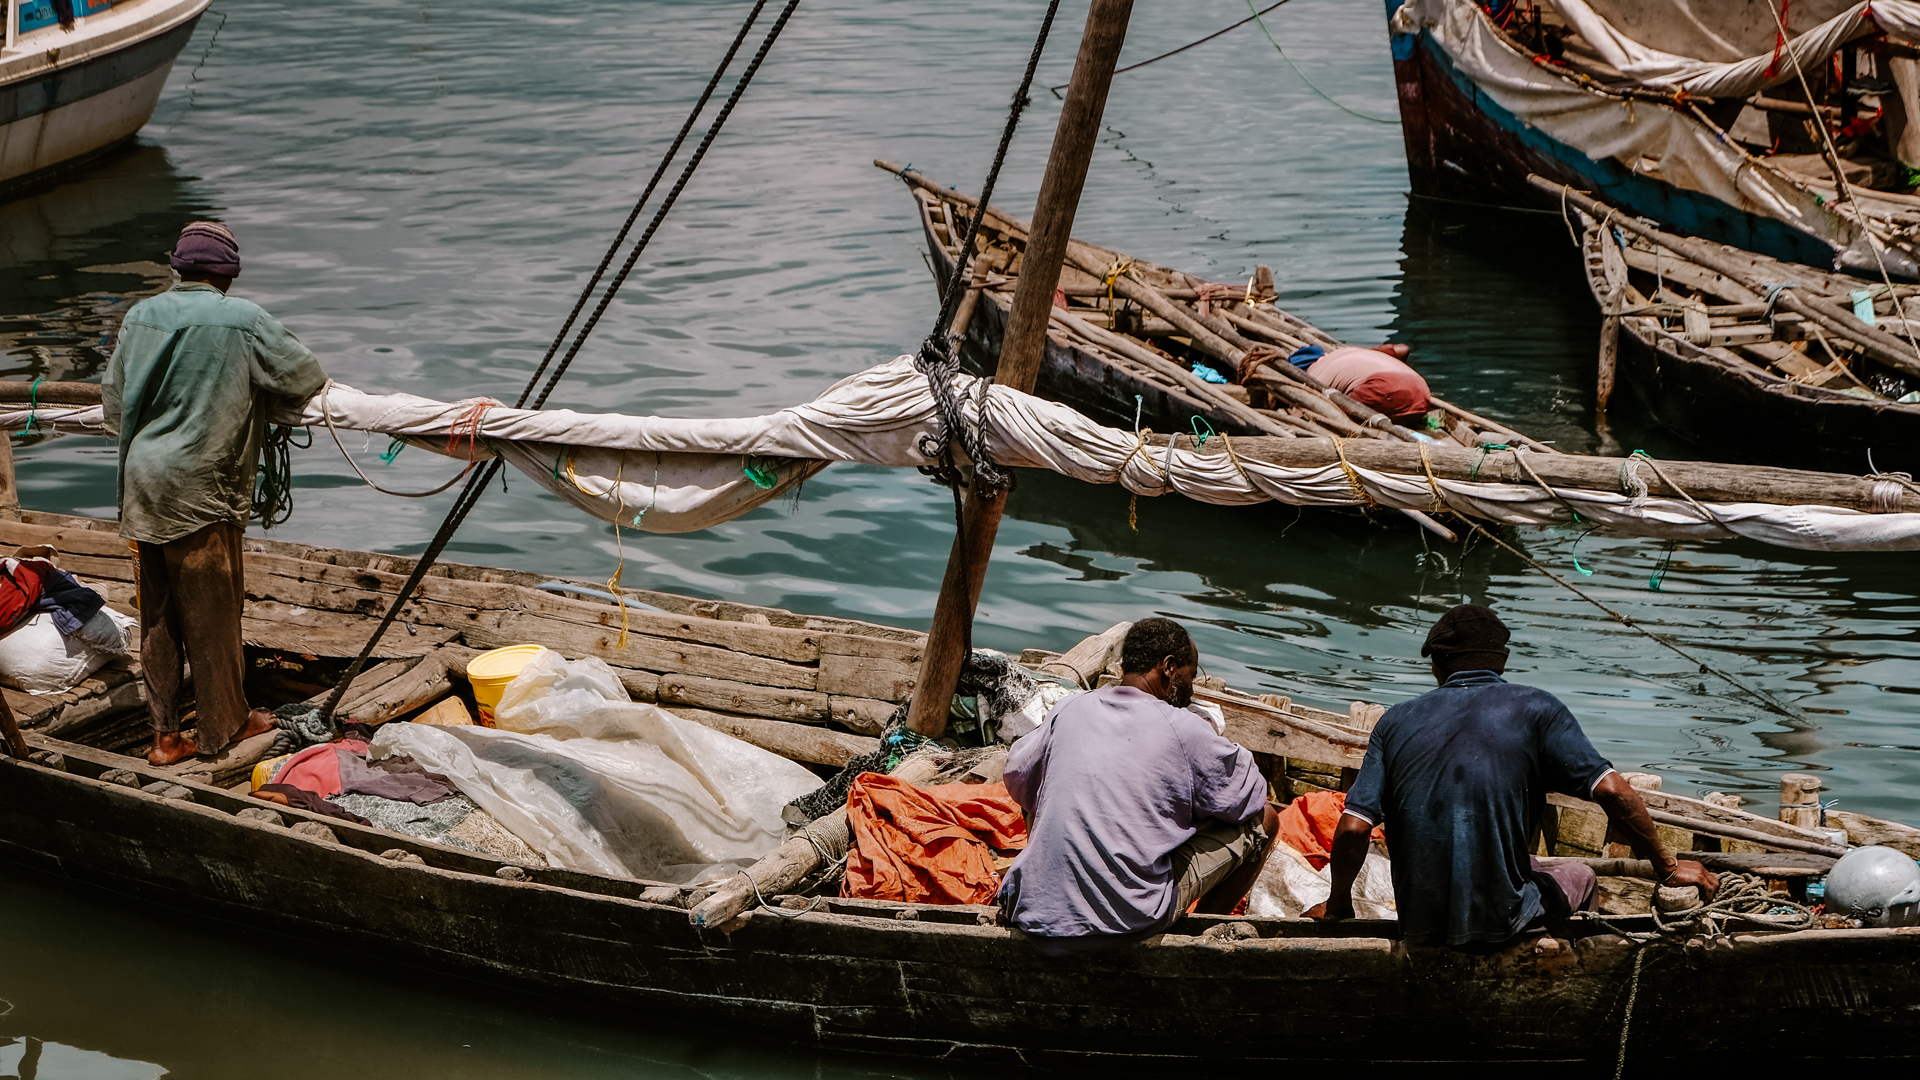 The fishermen getting their boats ready by the waterfront of Stone Town in Zanzibar, Tanzania